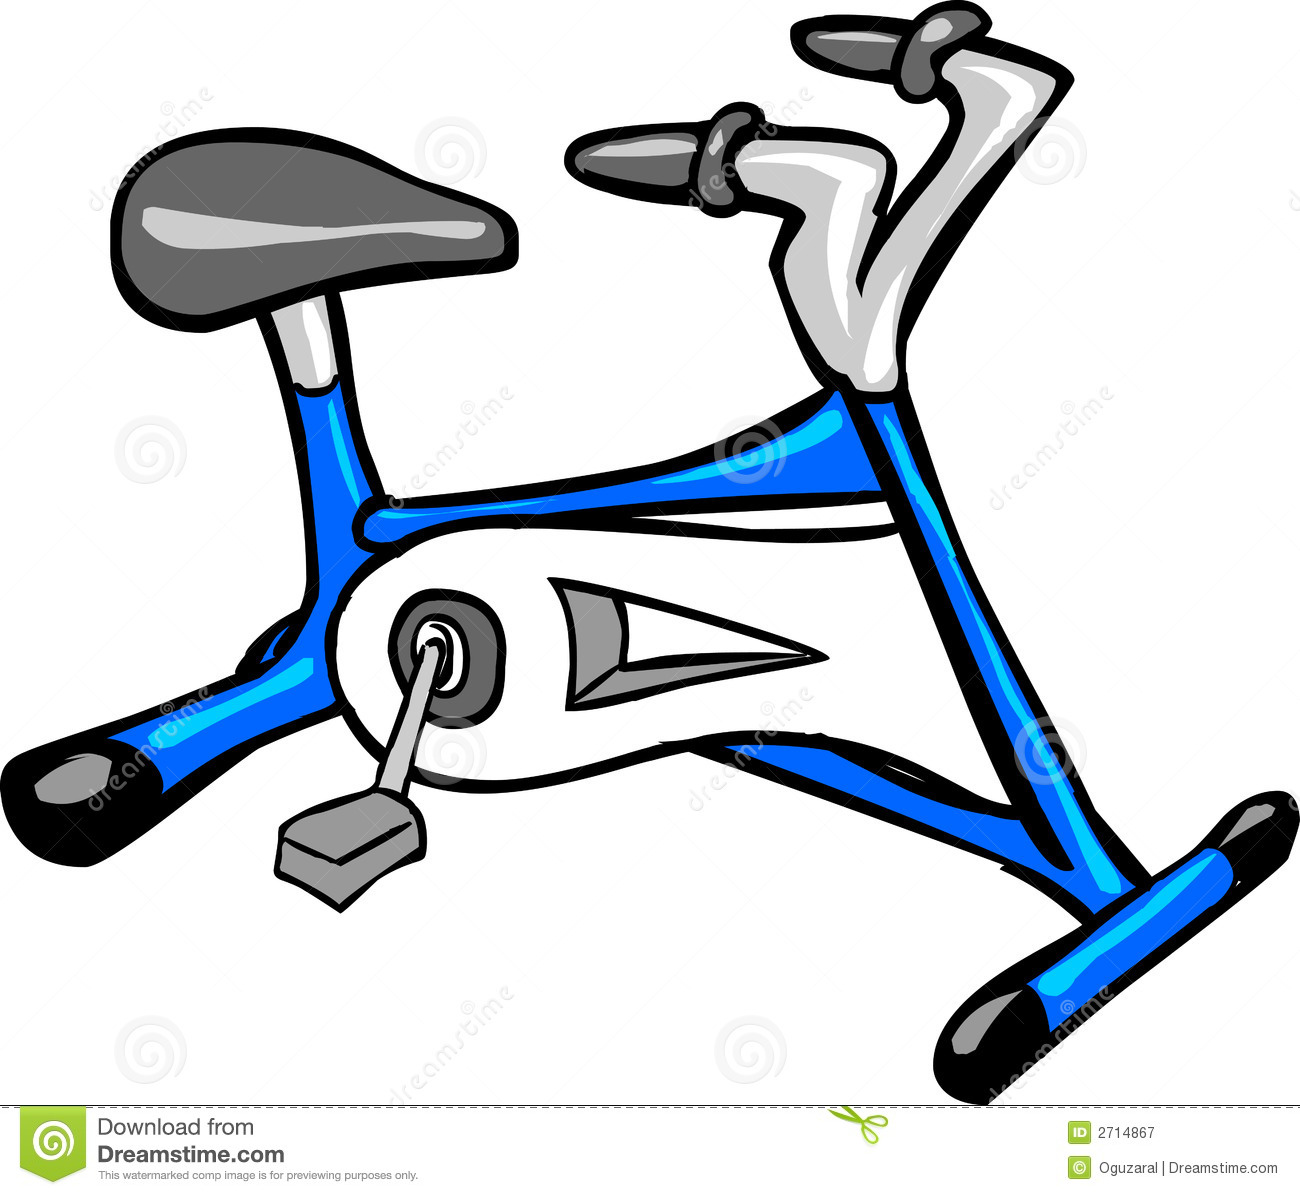 Fitness cartoon free download. Exercising clipart exercise machine